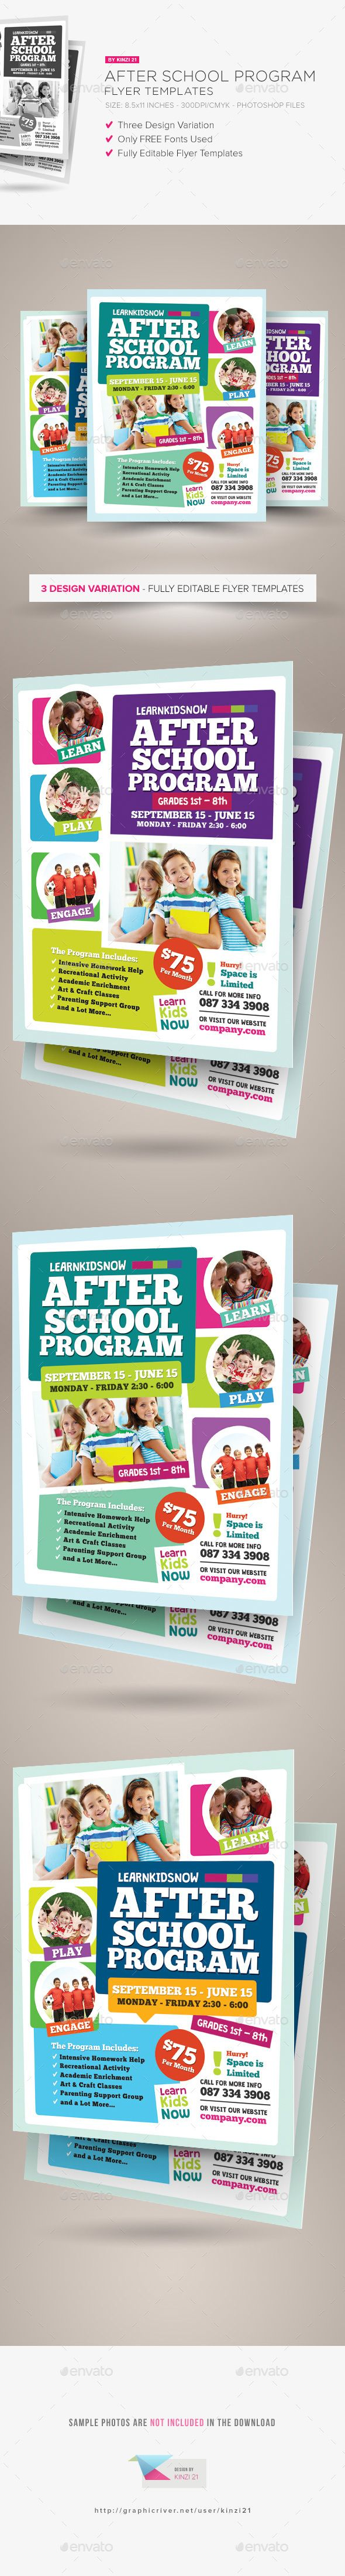 After School Program Flyer Template PSD #design Download: http://graphicriver.net/item/after-school-program-flyer-templates/14518919?ref=ksioks